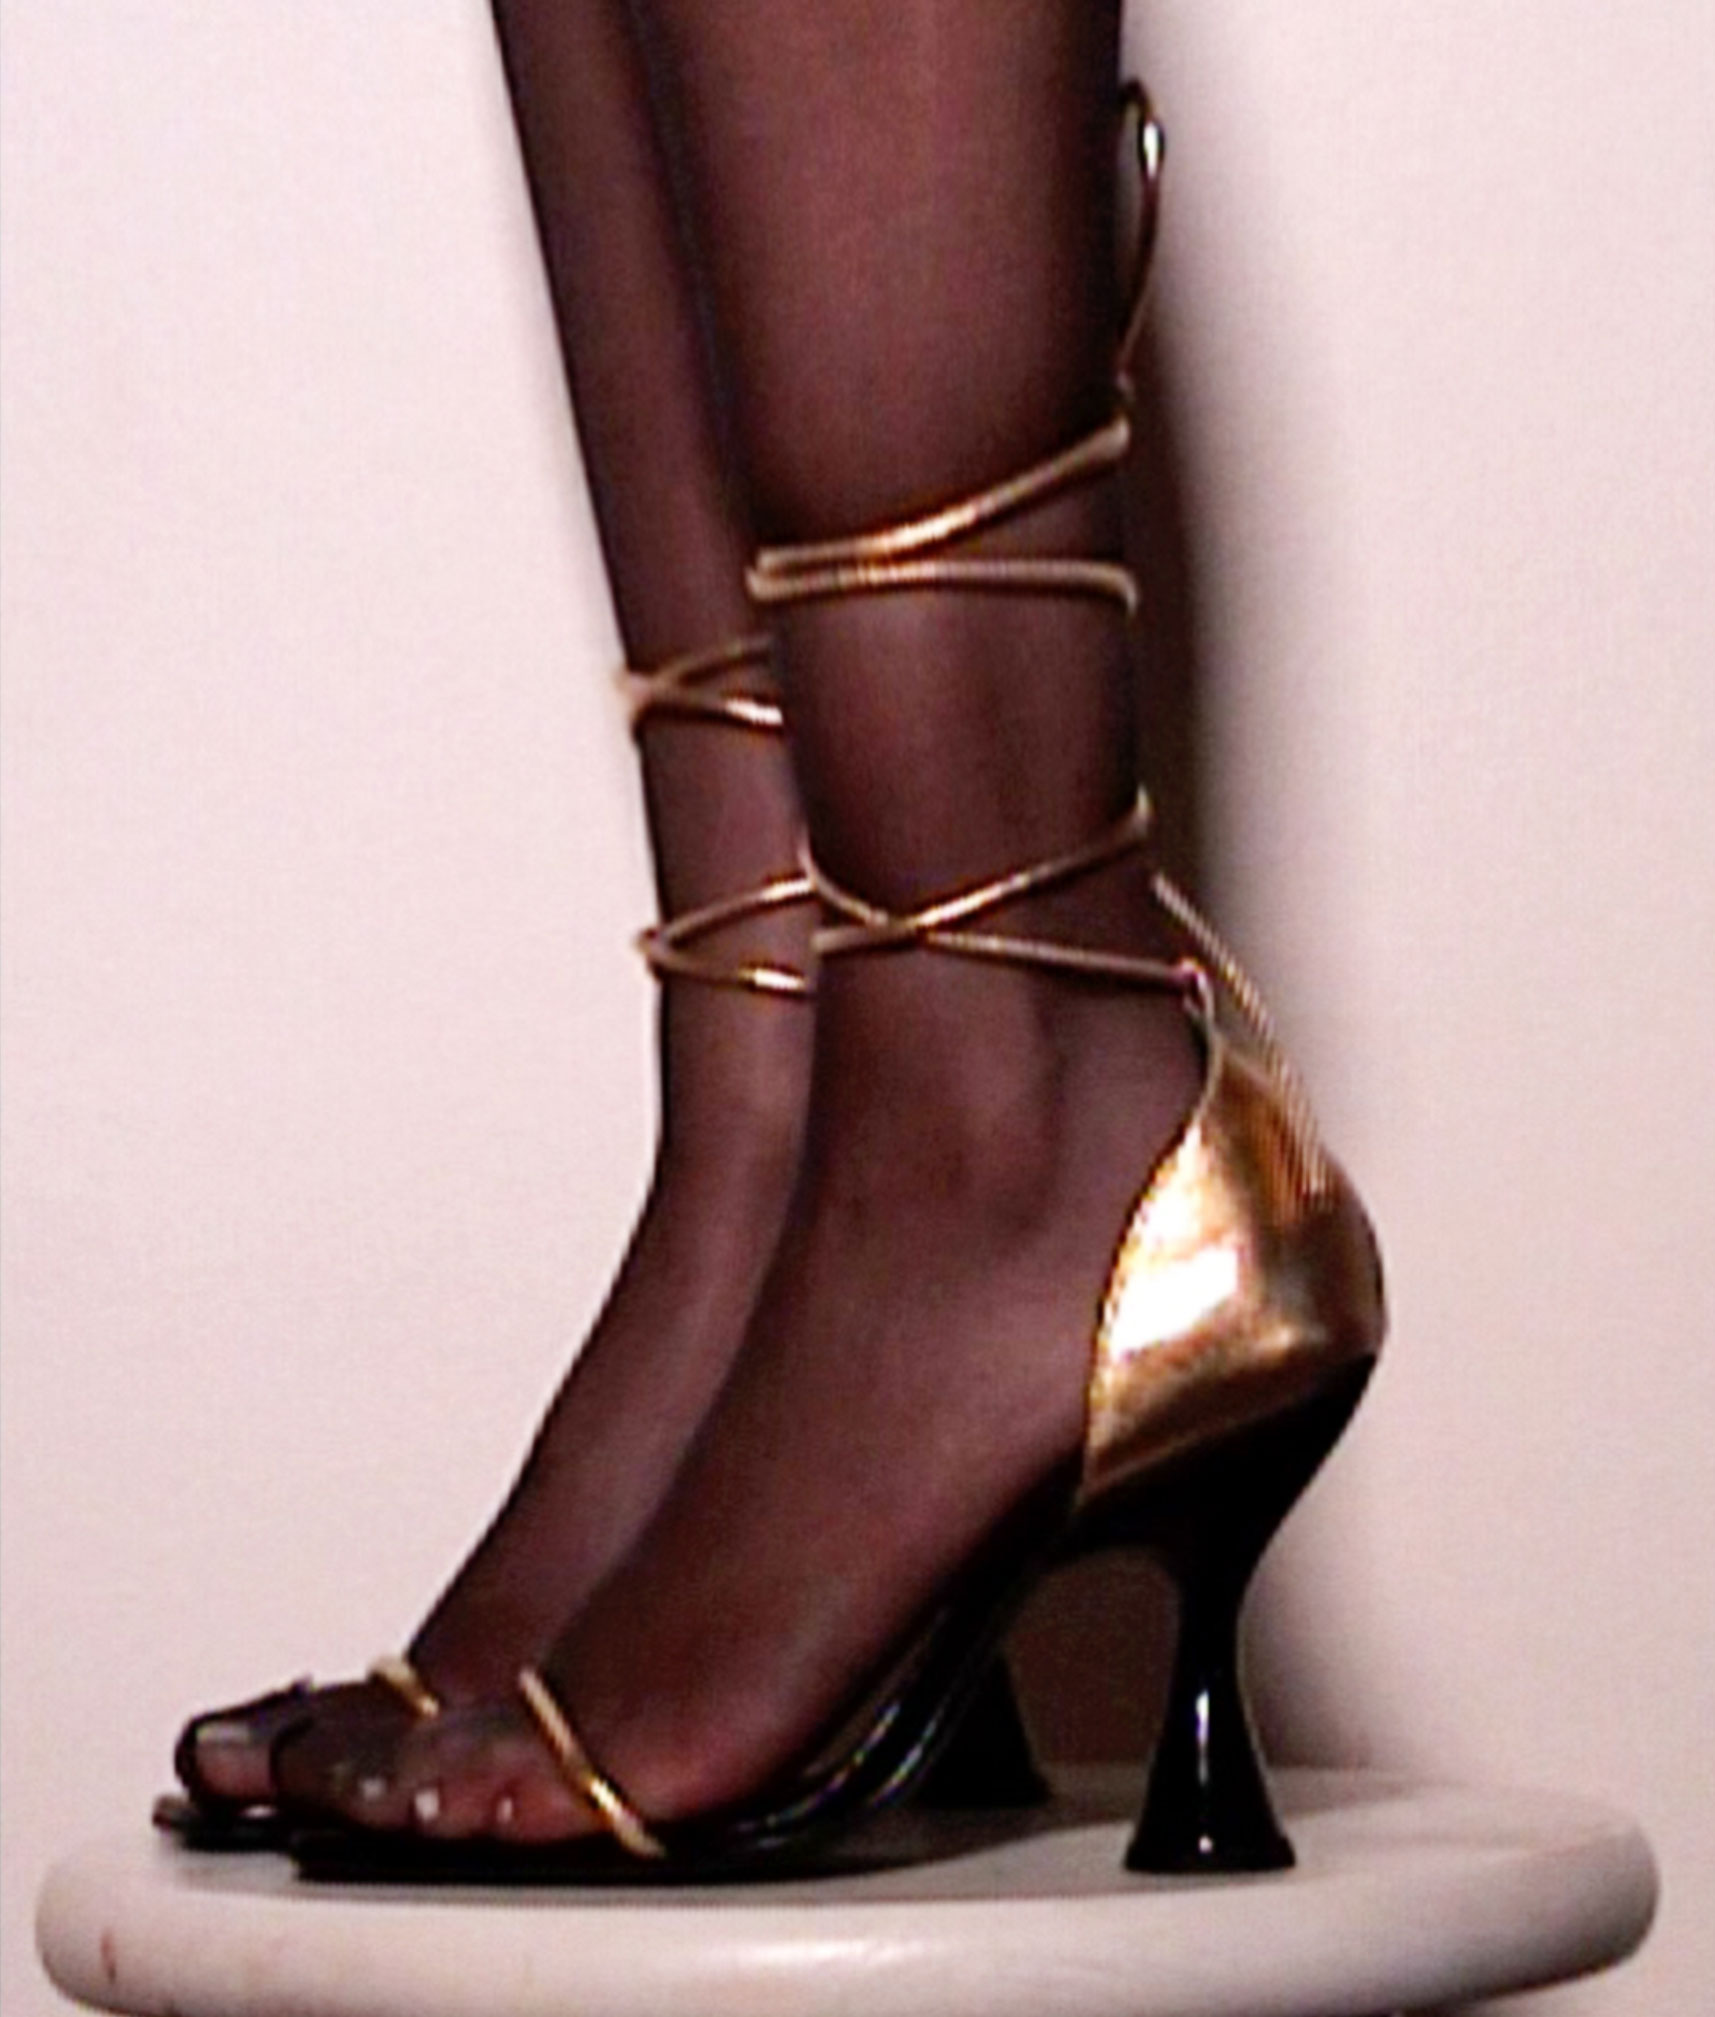 Stainless Ankle Strap Sandal by Nadia Lee Cohen